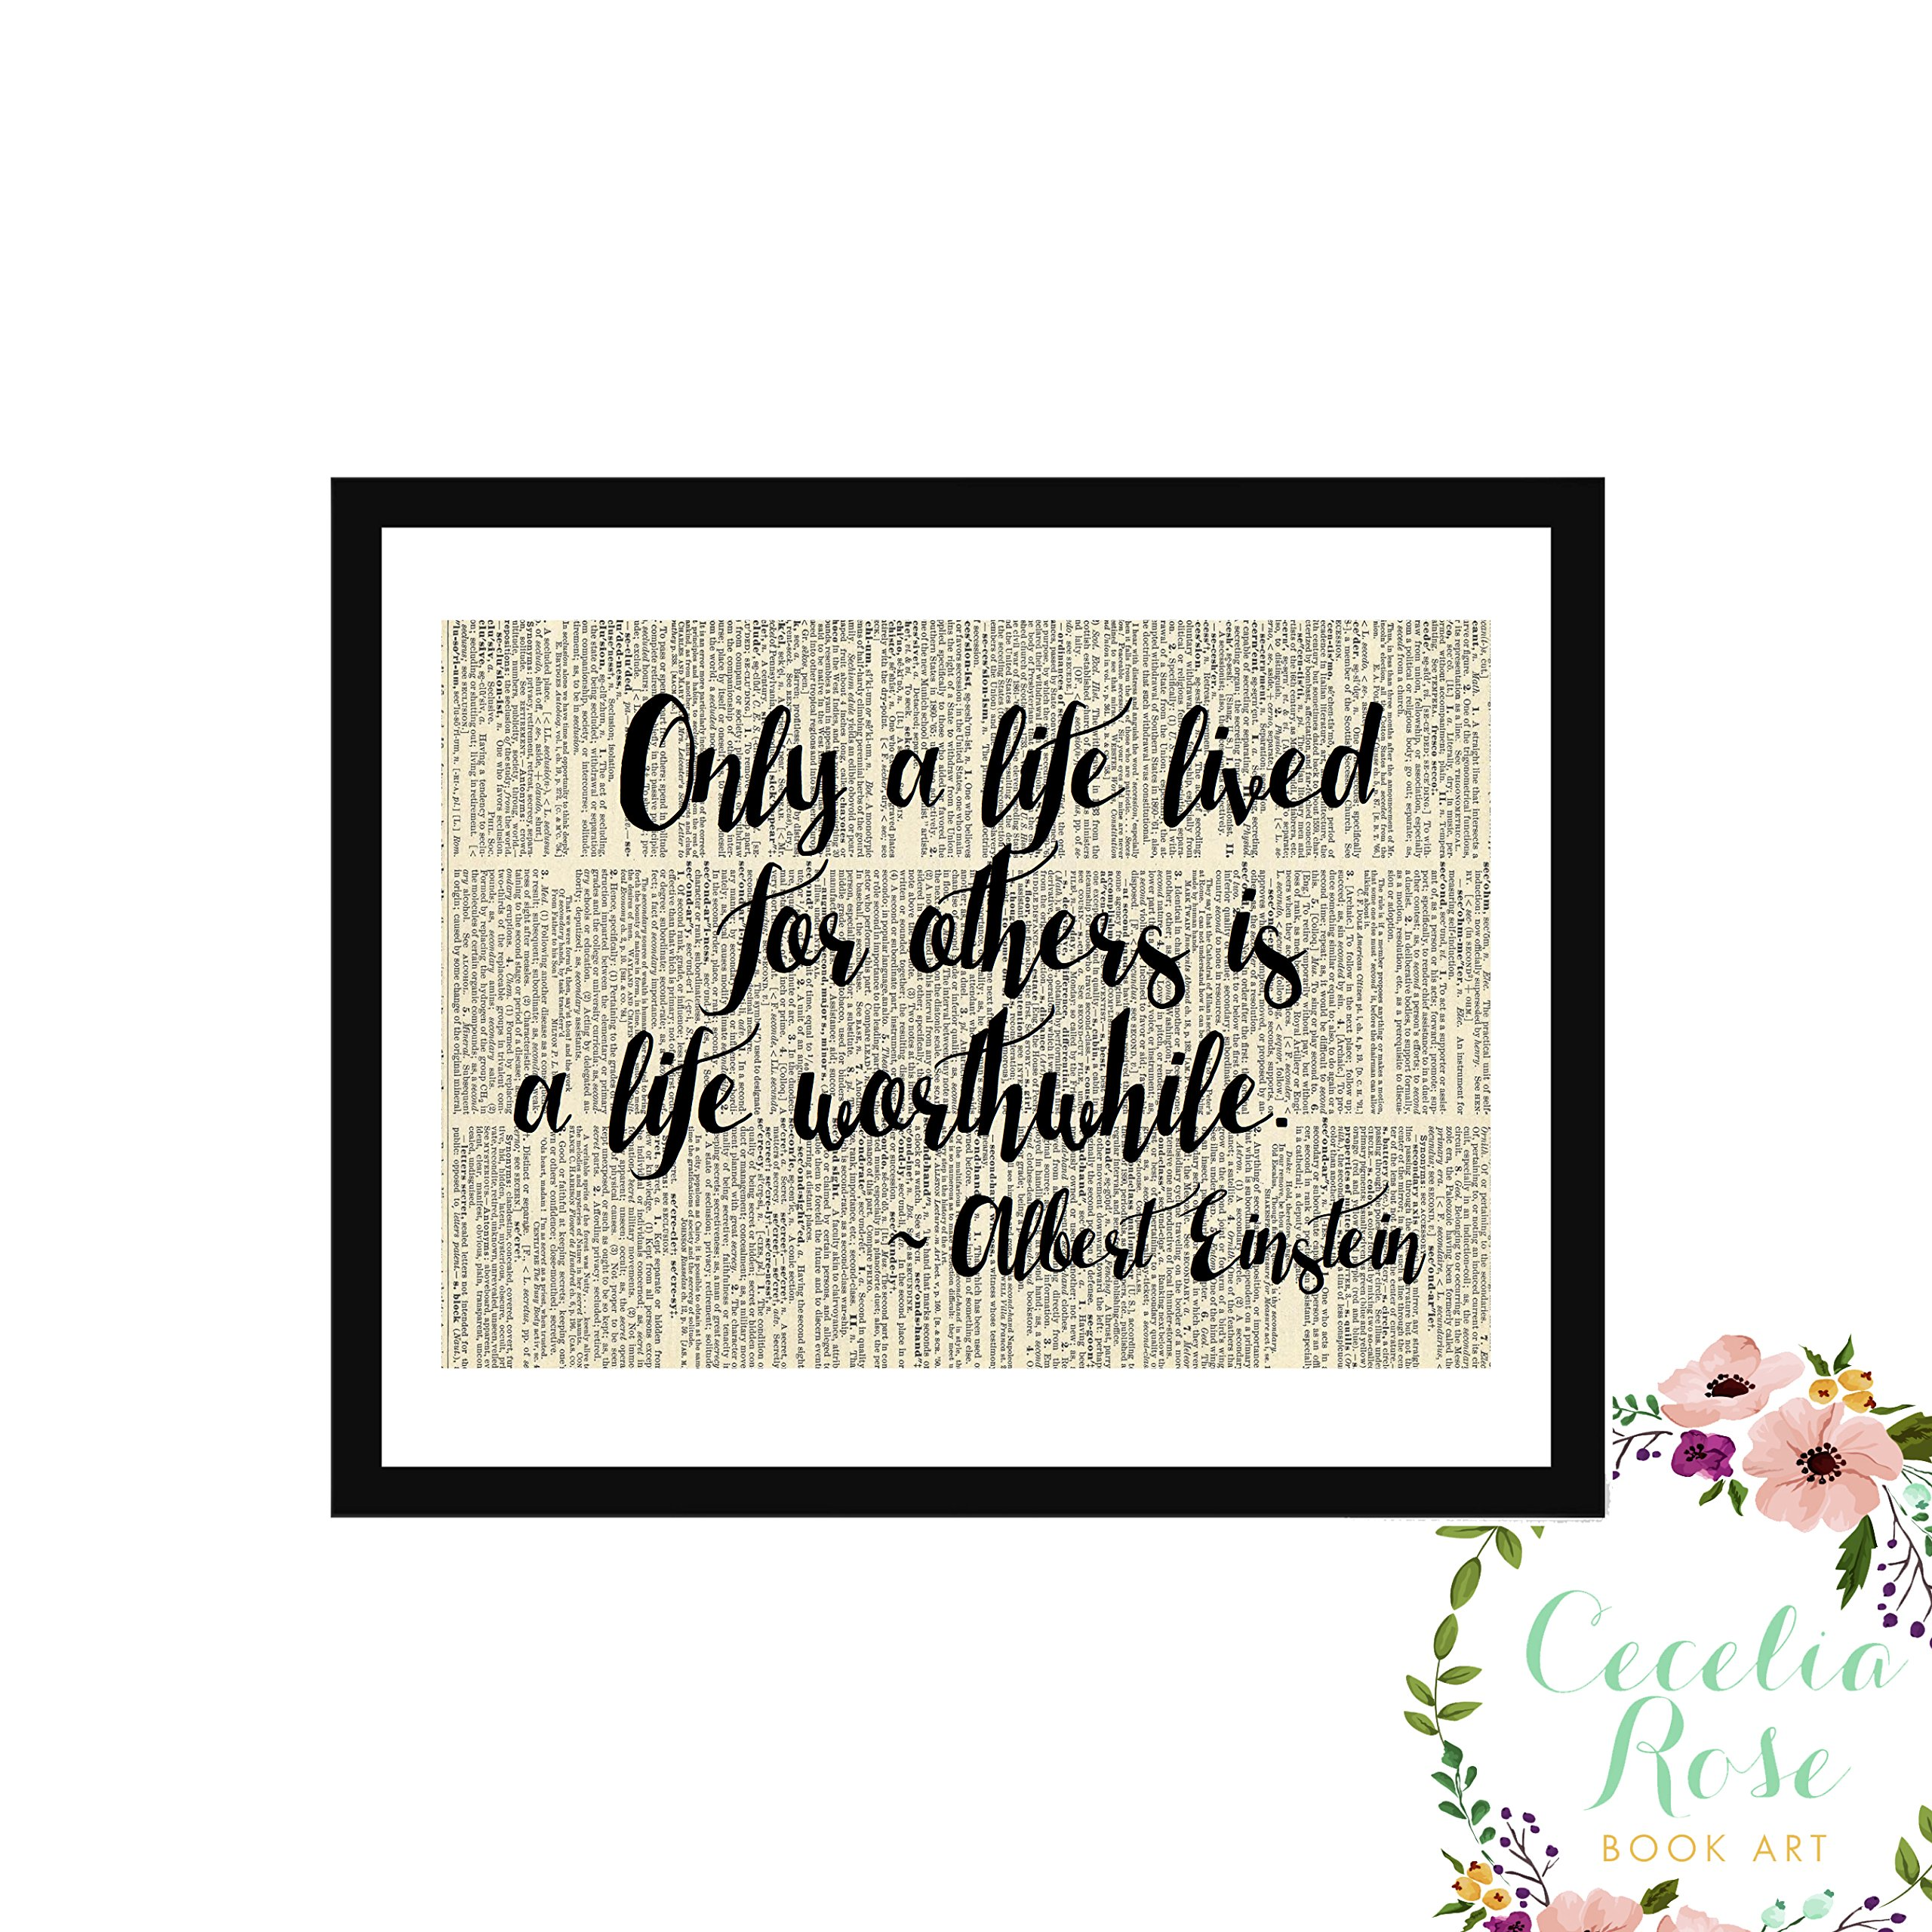 Only A Life Lived For Others Is A Life Worthwhile Albert Einstein Typography Farmhouse Childrens Vintage Book Page Unframed 5x7